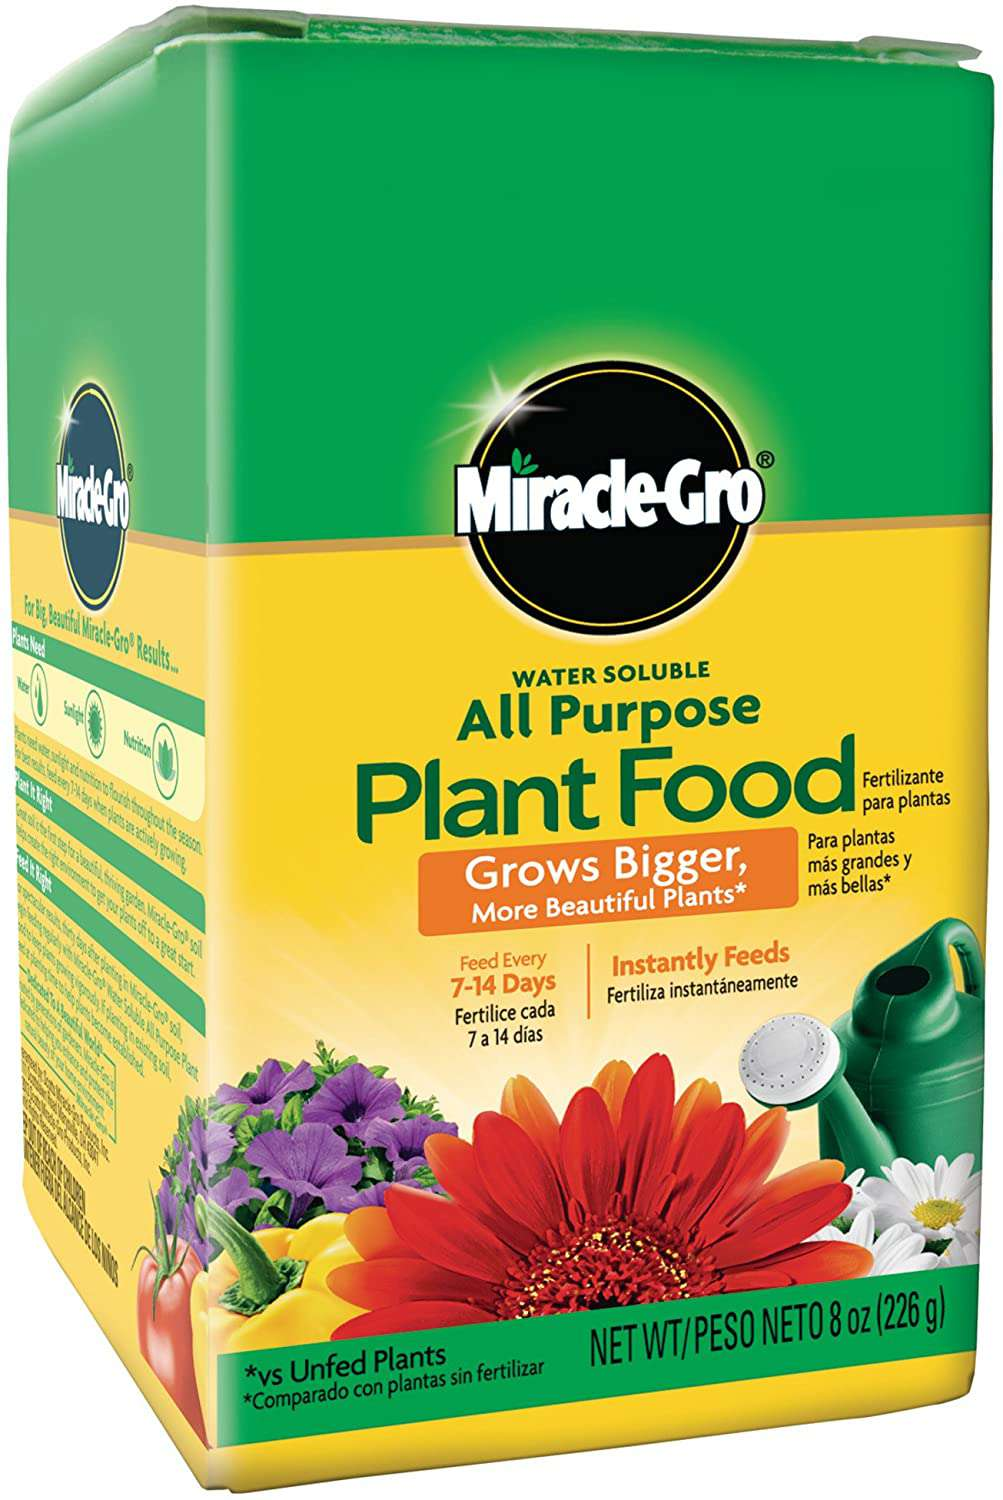 Miracle-Gro Plant Food